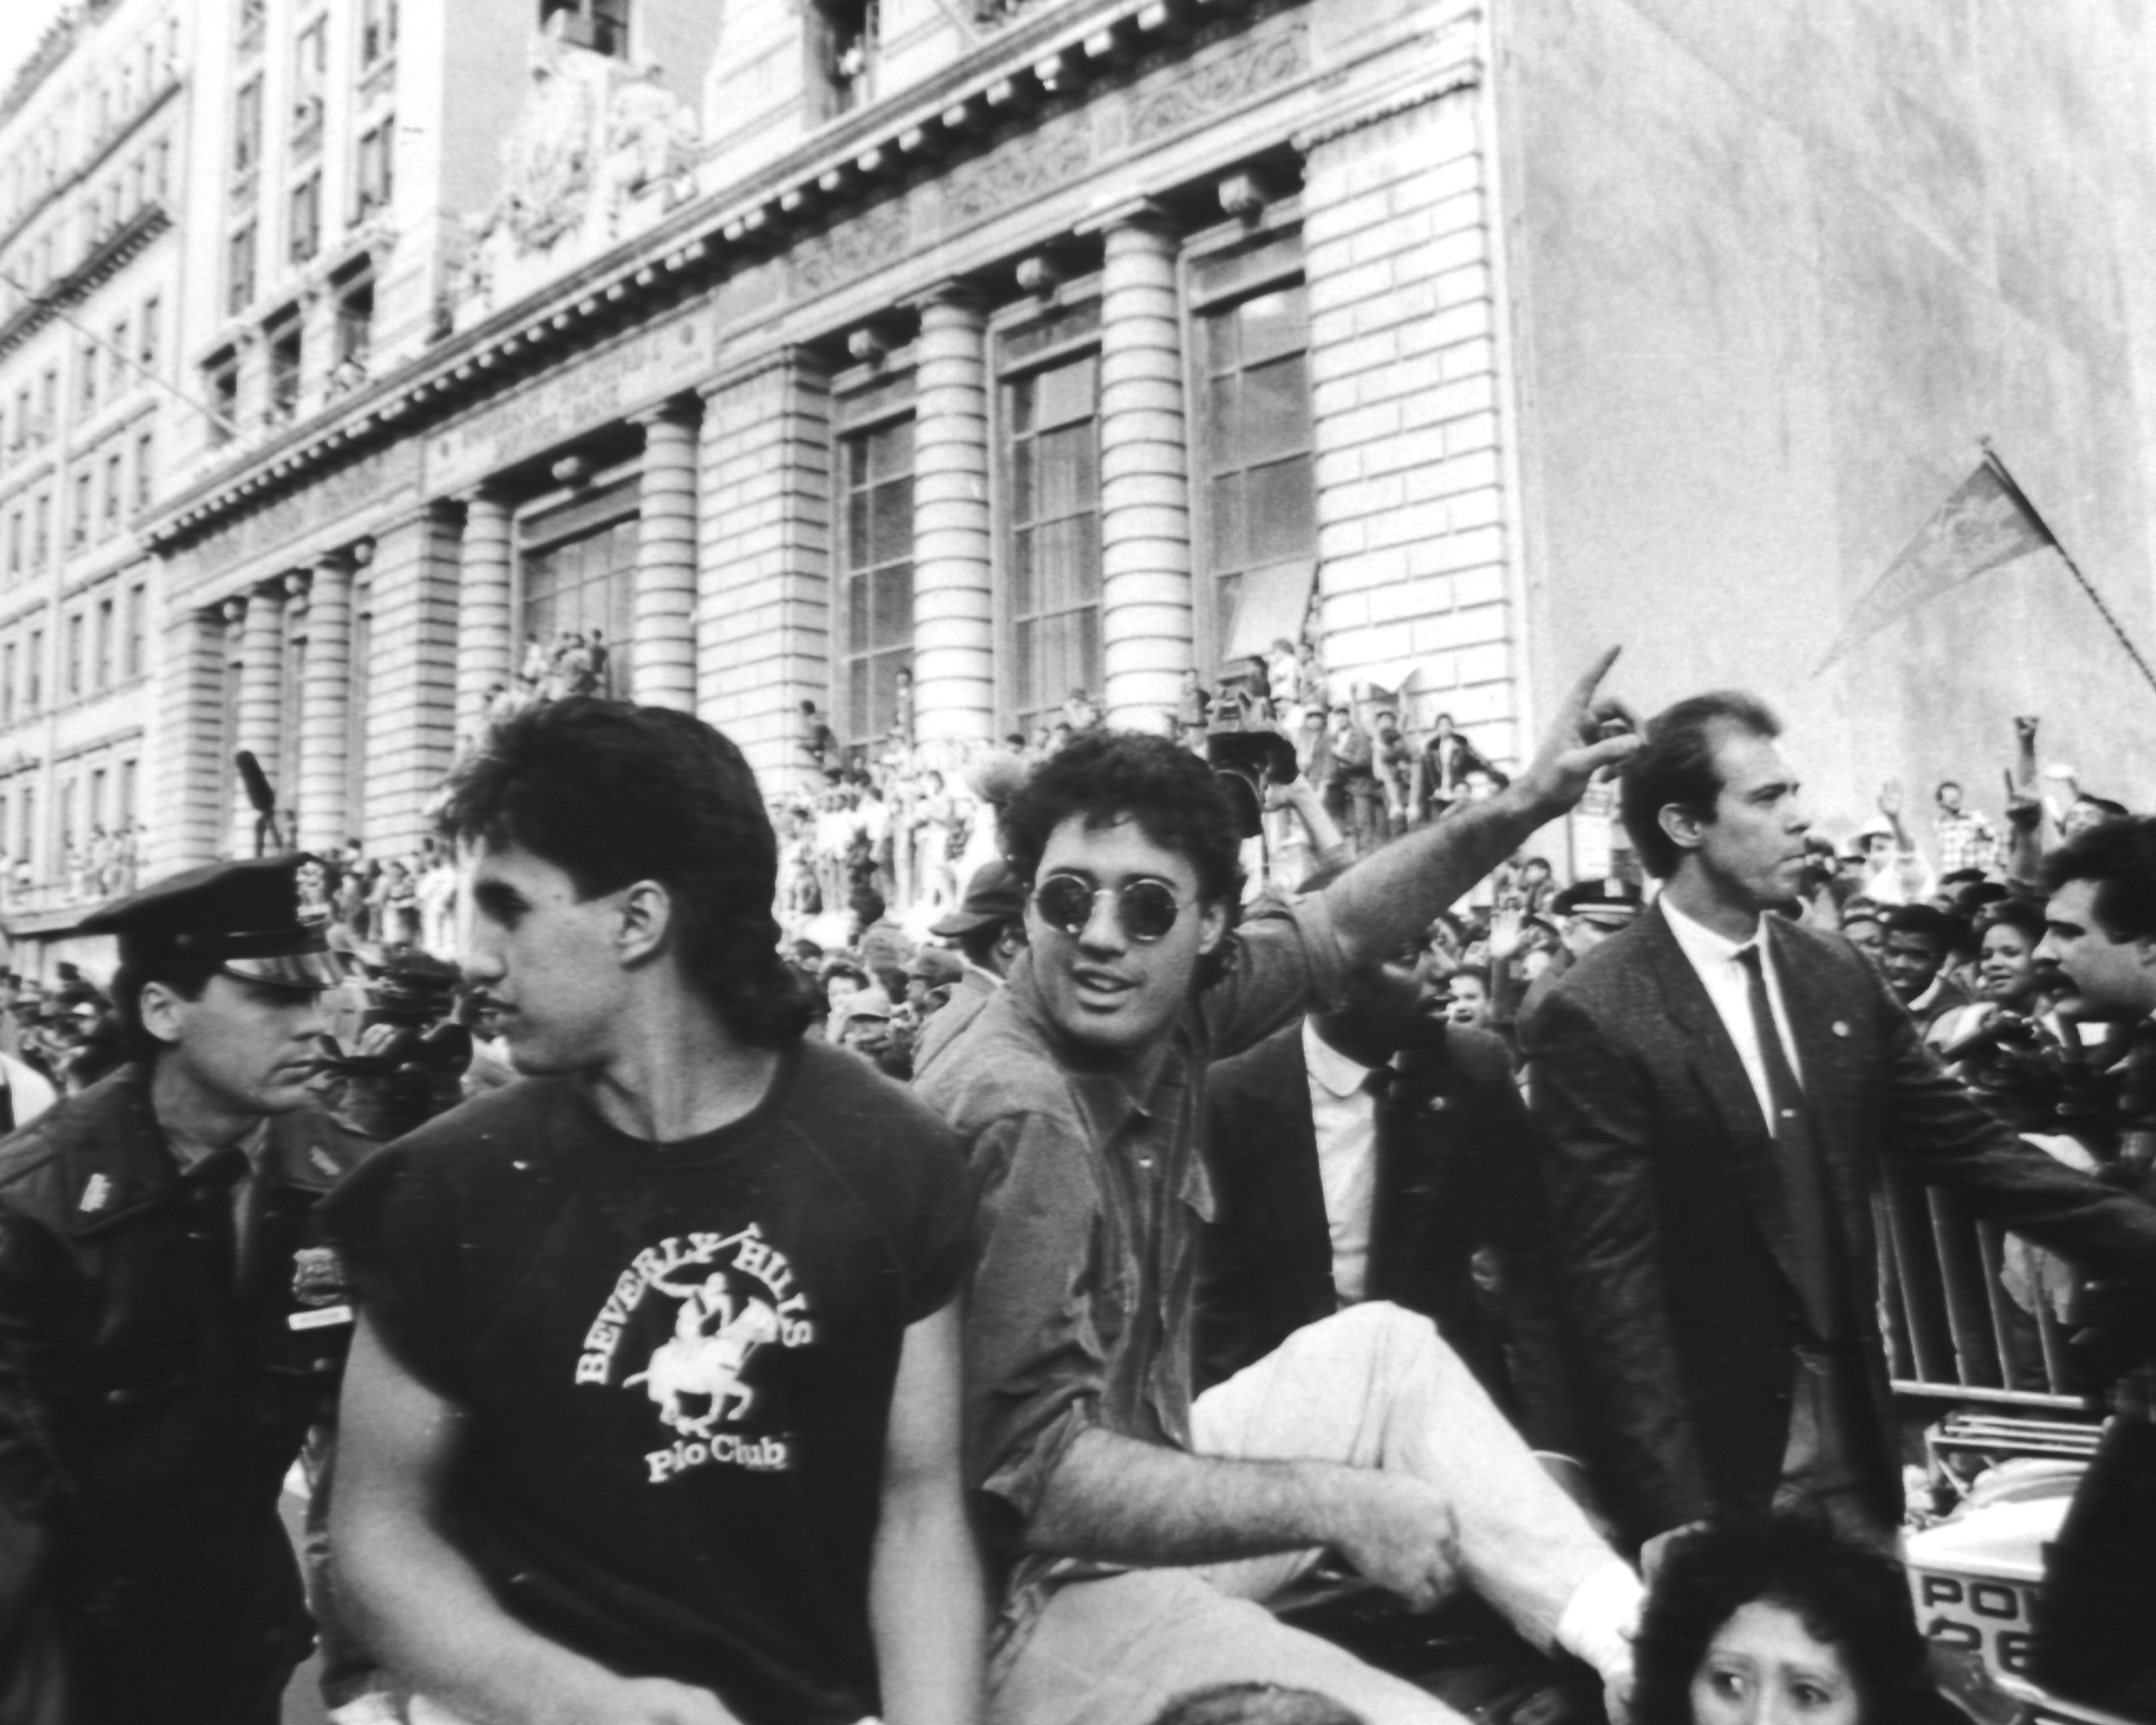 Pitcher Ron Darling at the New York Mets' parade on Oct. 28, 1986, after the team won the World Series.